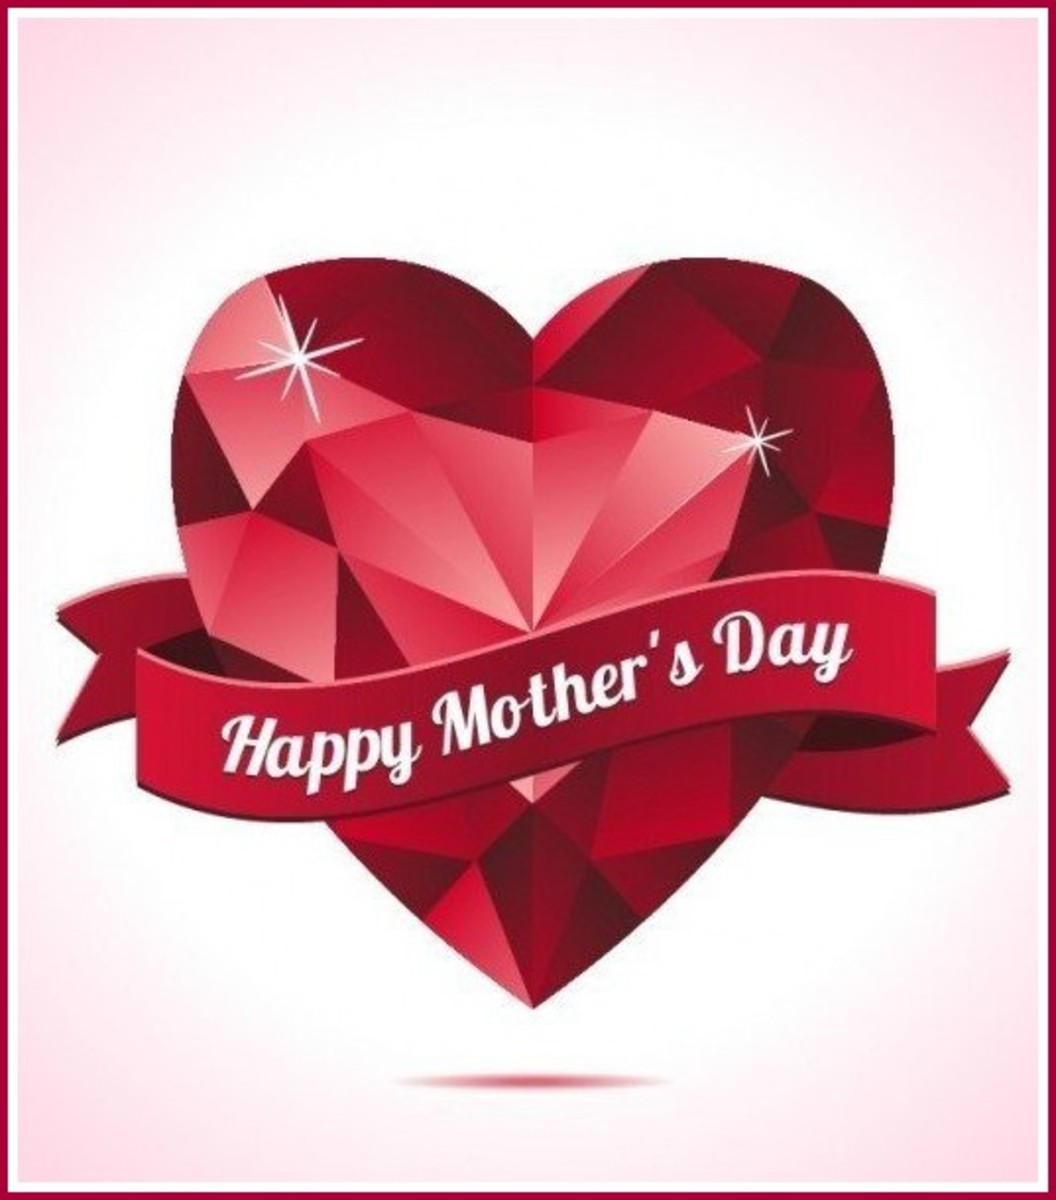 Mother's Day Picture of Red Diamond with Banner